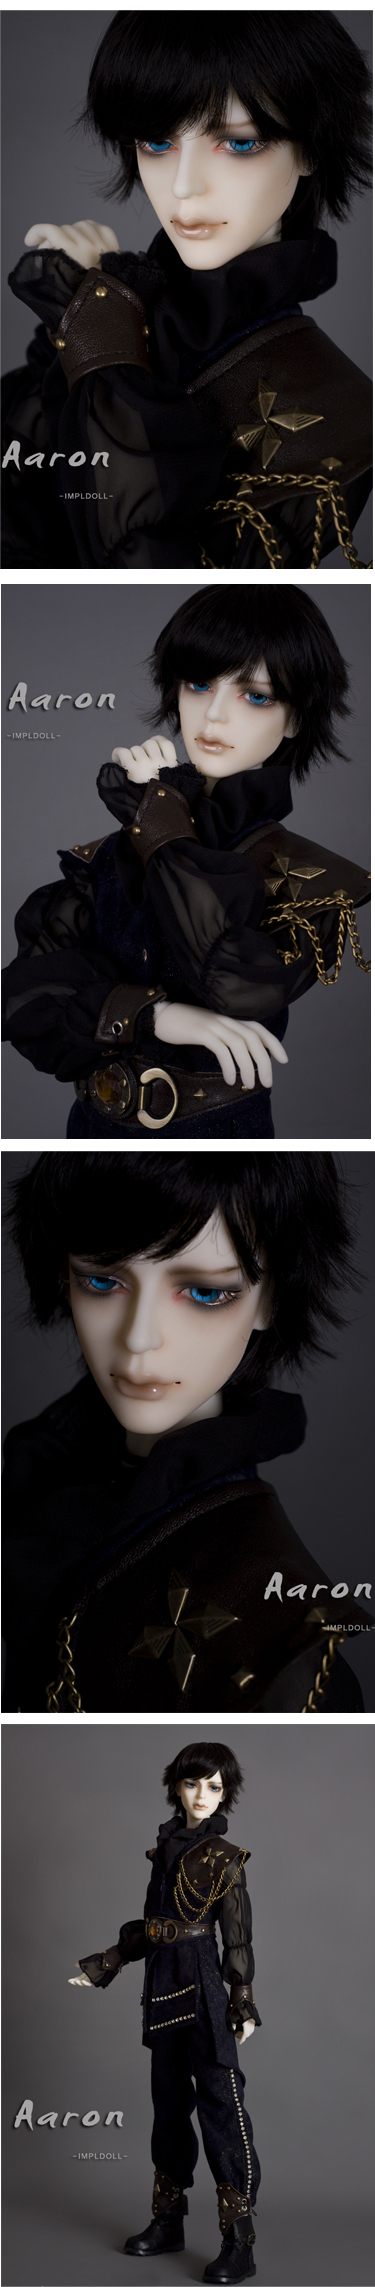 BJD Aaron 64cm Boy Ball-jointed Doll